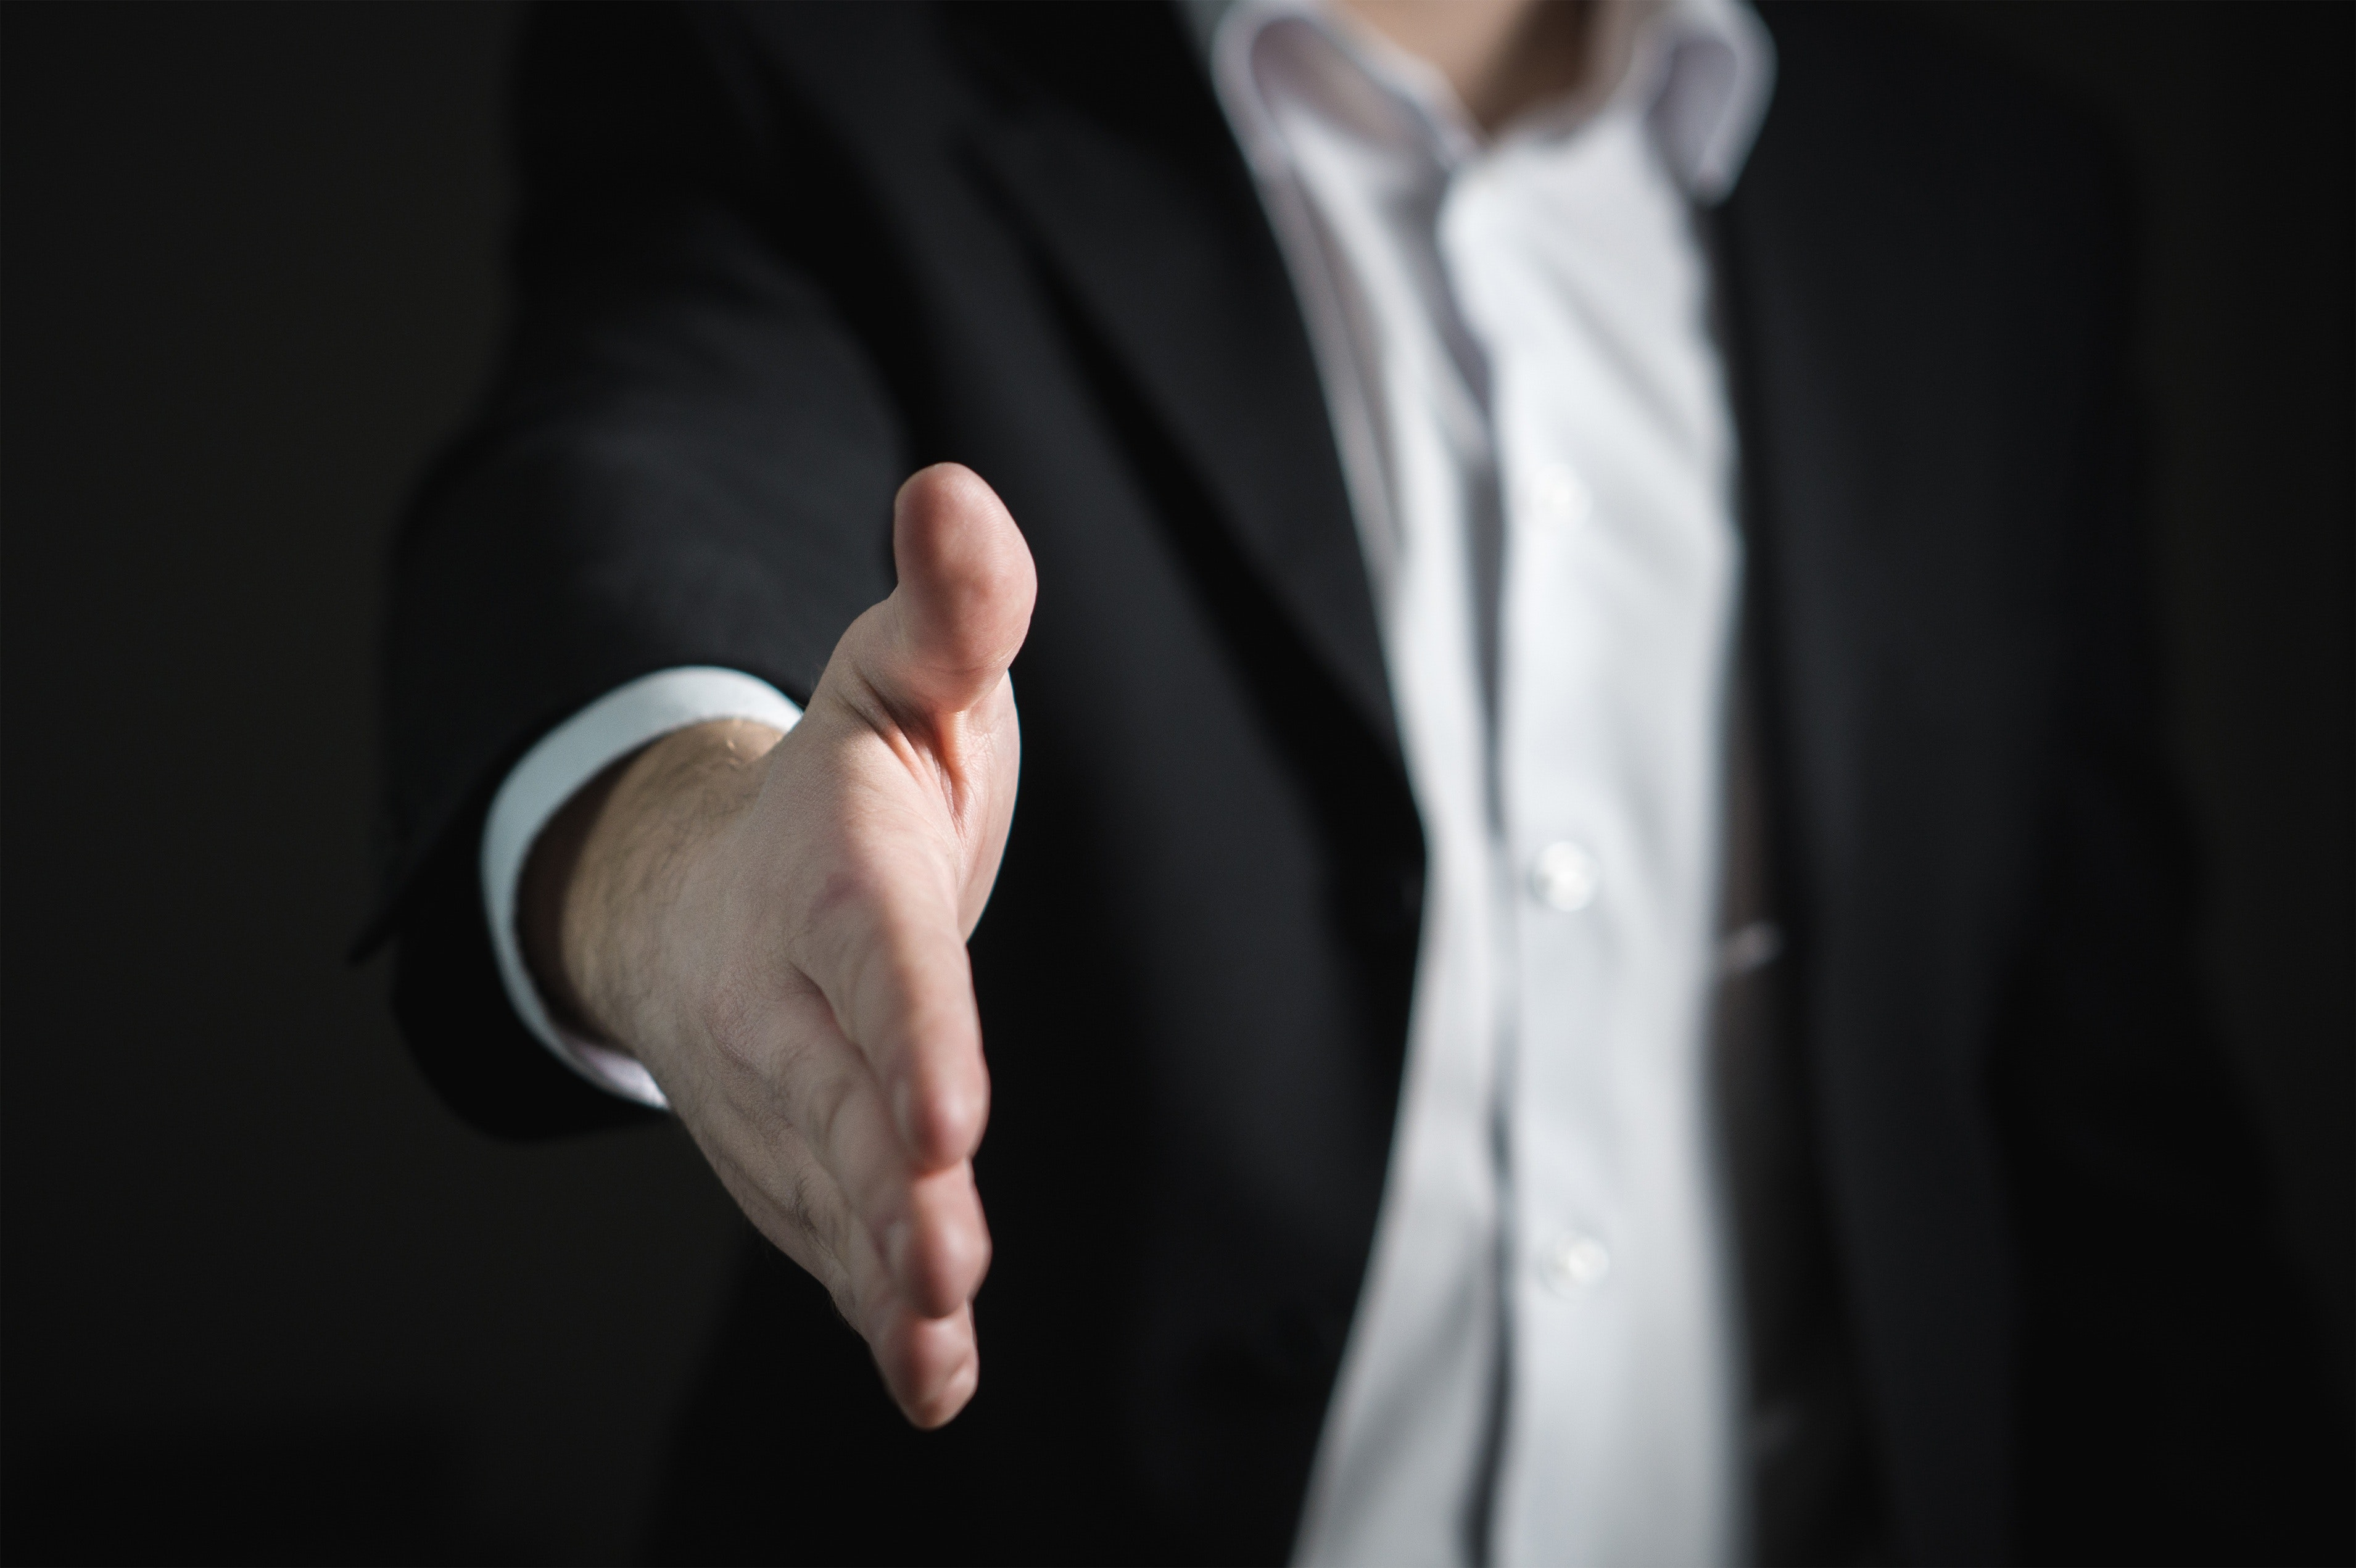 A man offering a hand, like at a job interview